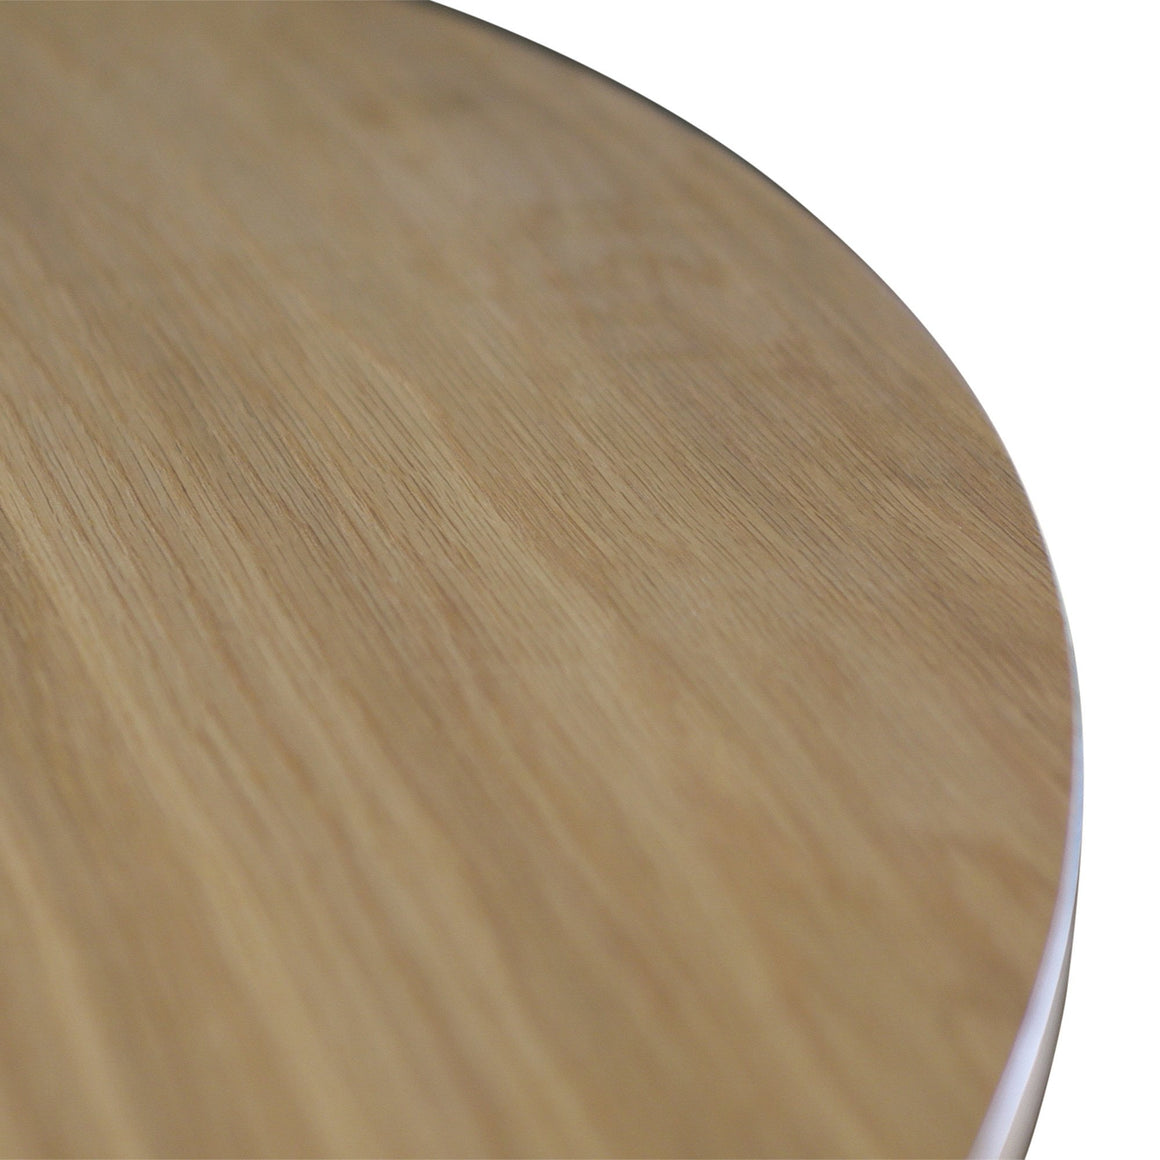 OSLO OAK 1M ROUND DINING TABLE/DESK